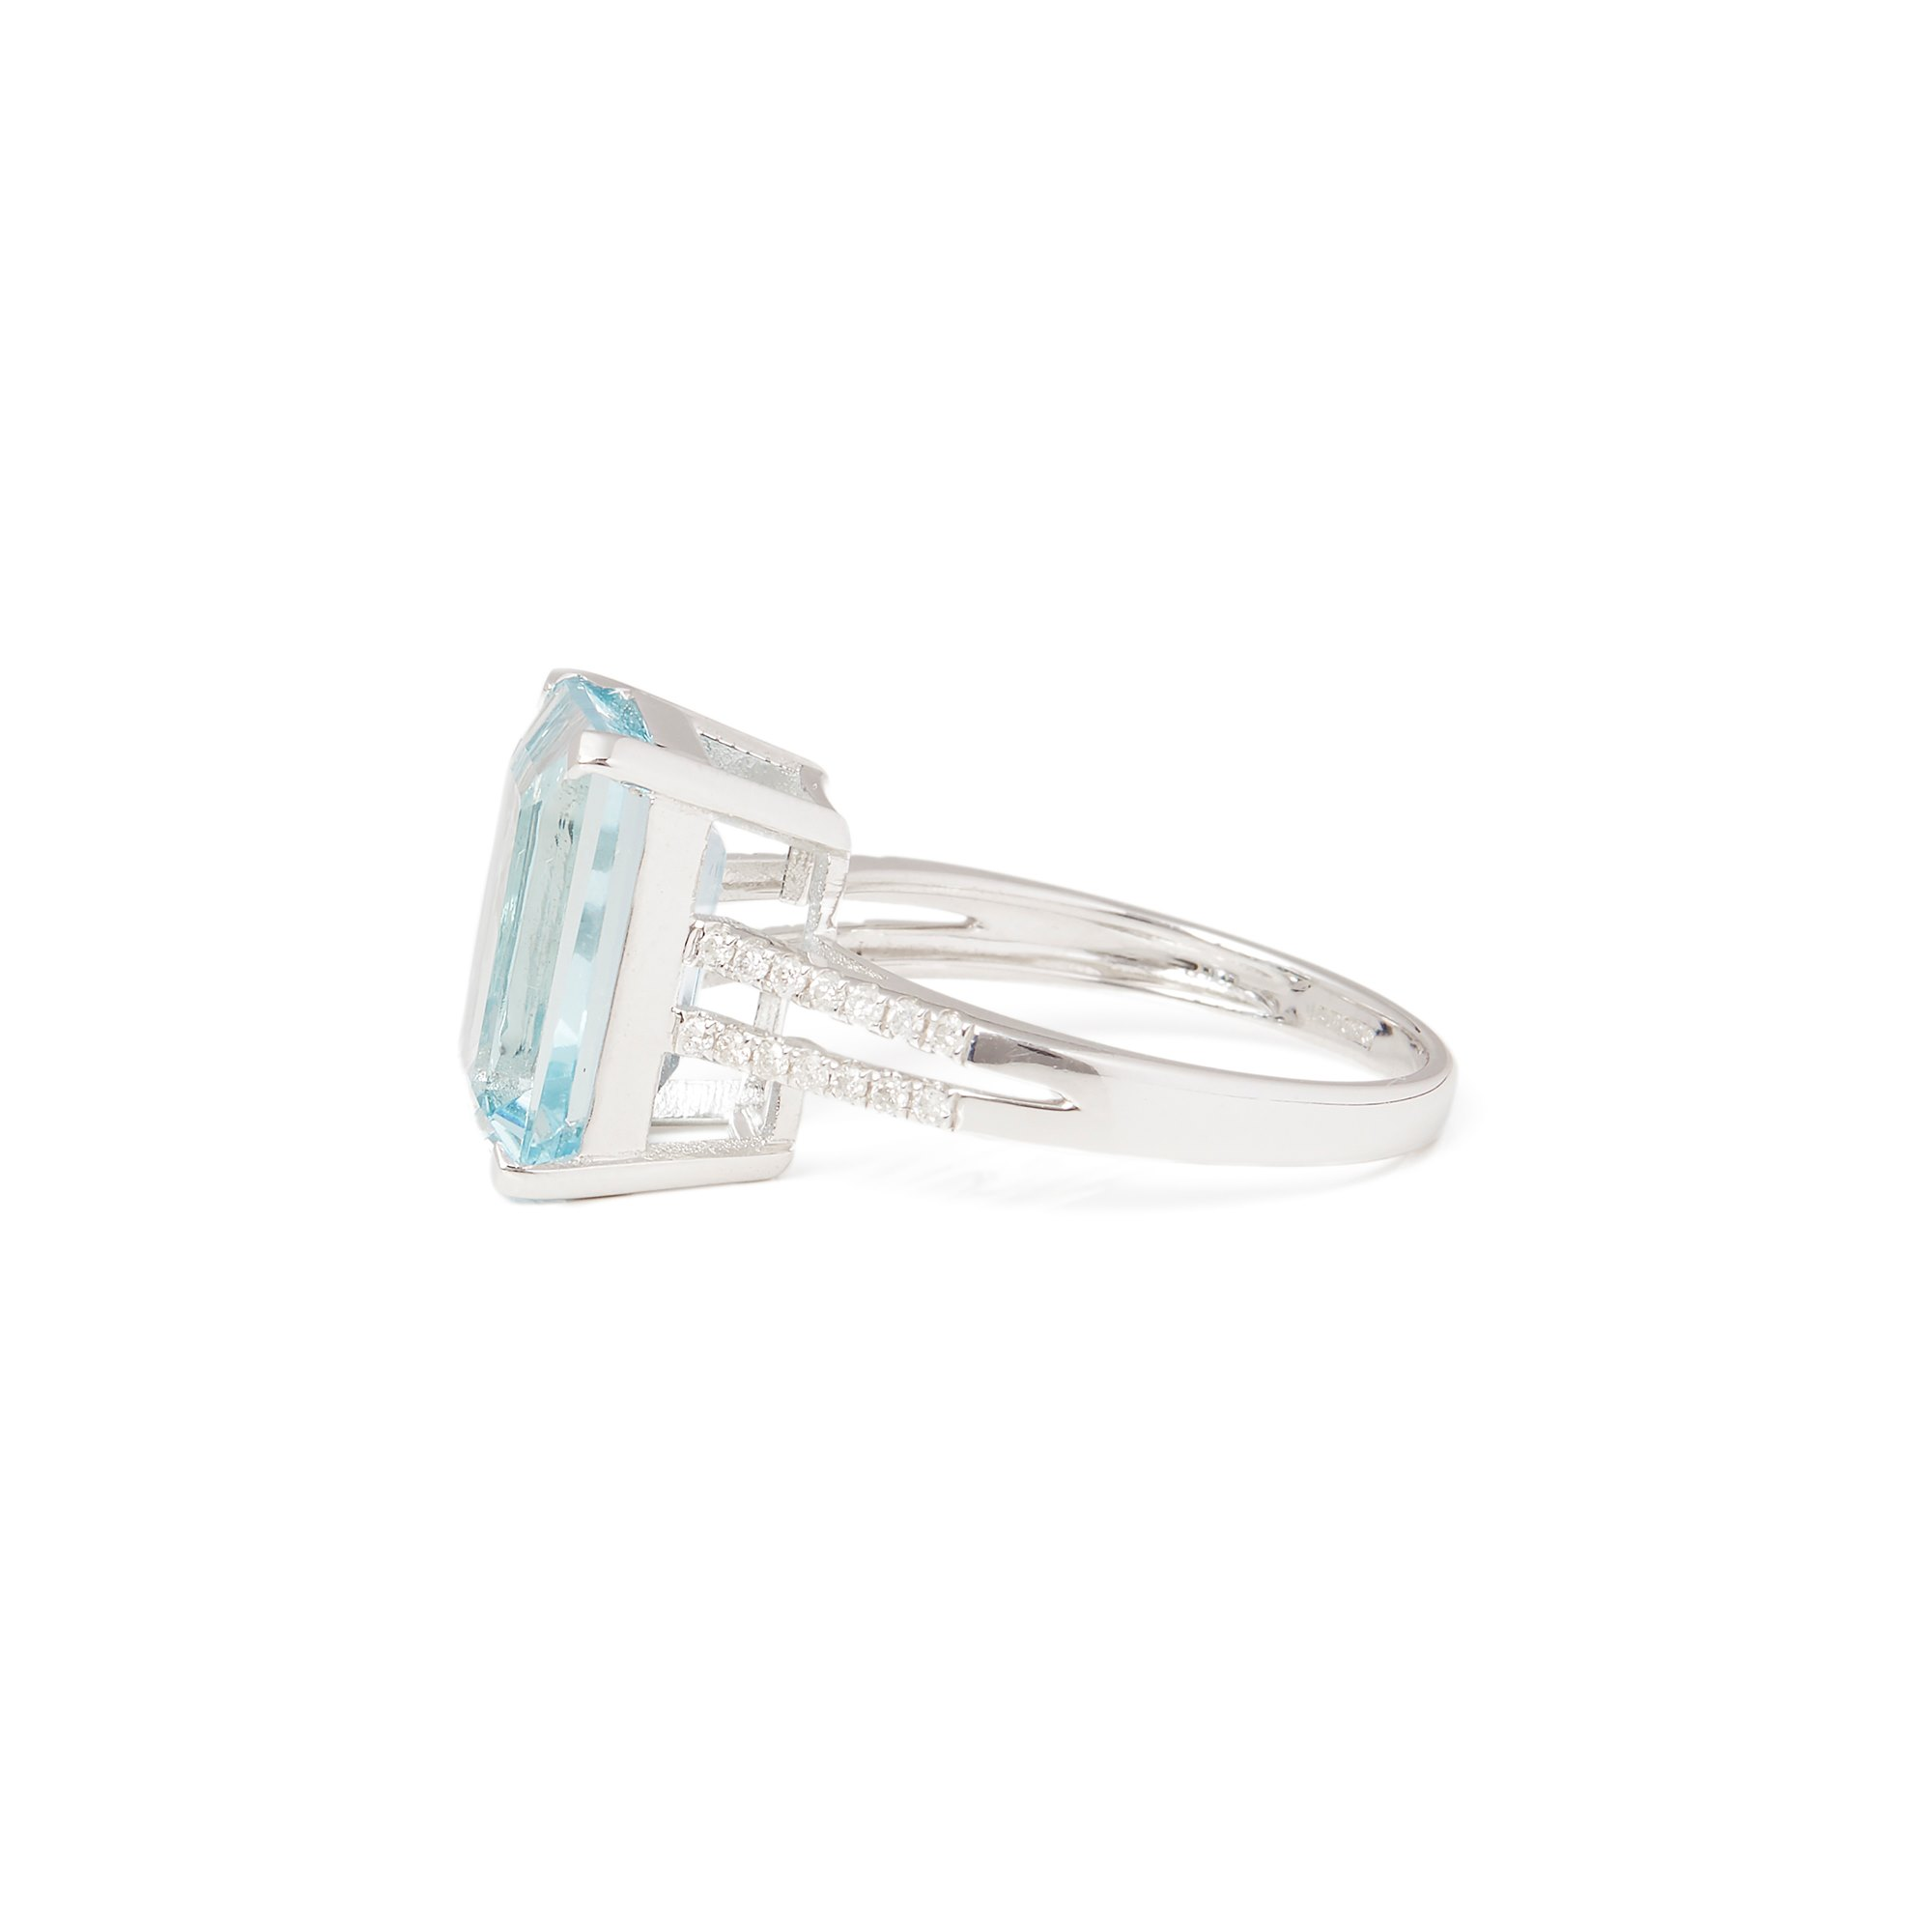 David Jerome 18k White Gold Aquamarine and Diamond Ring